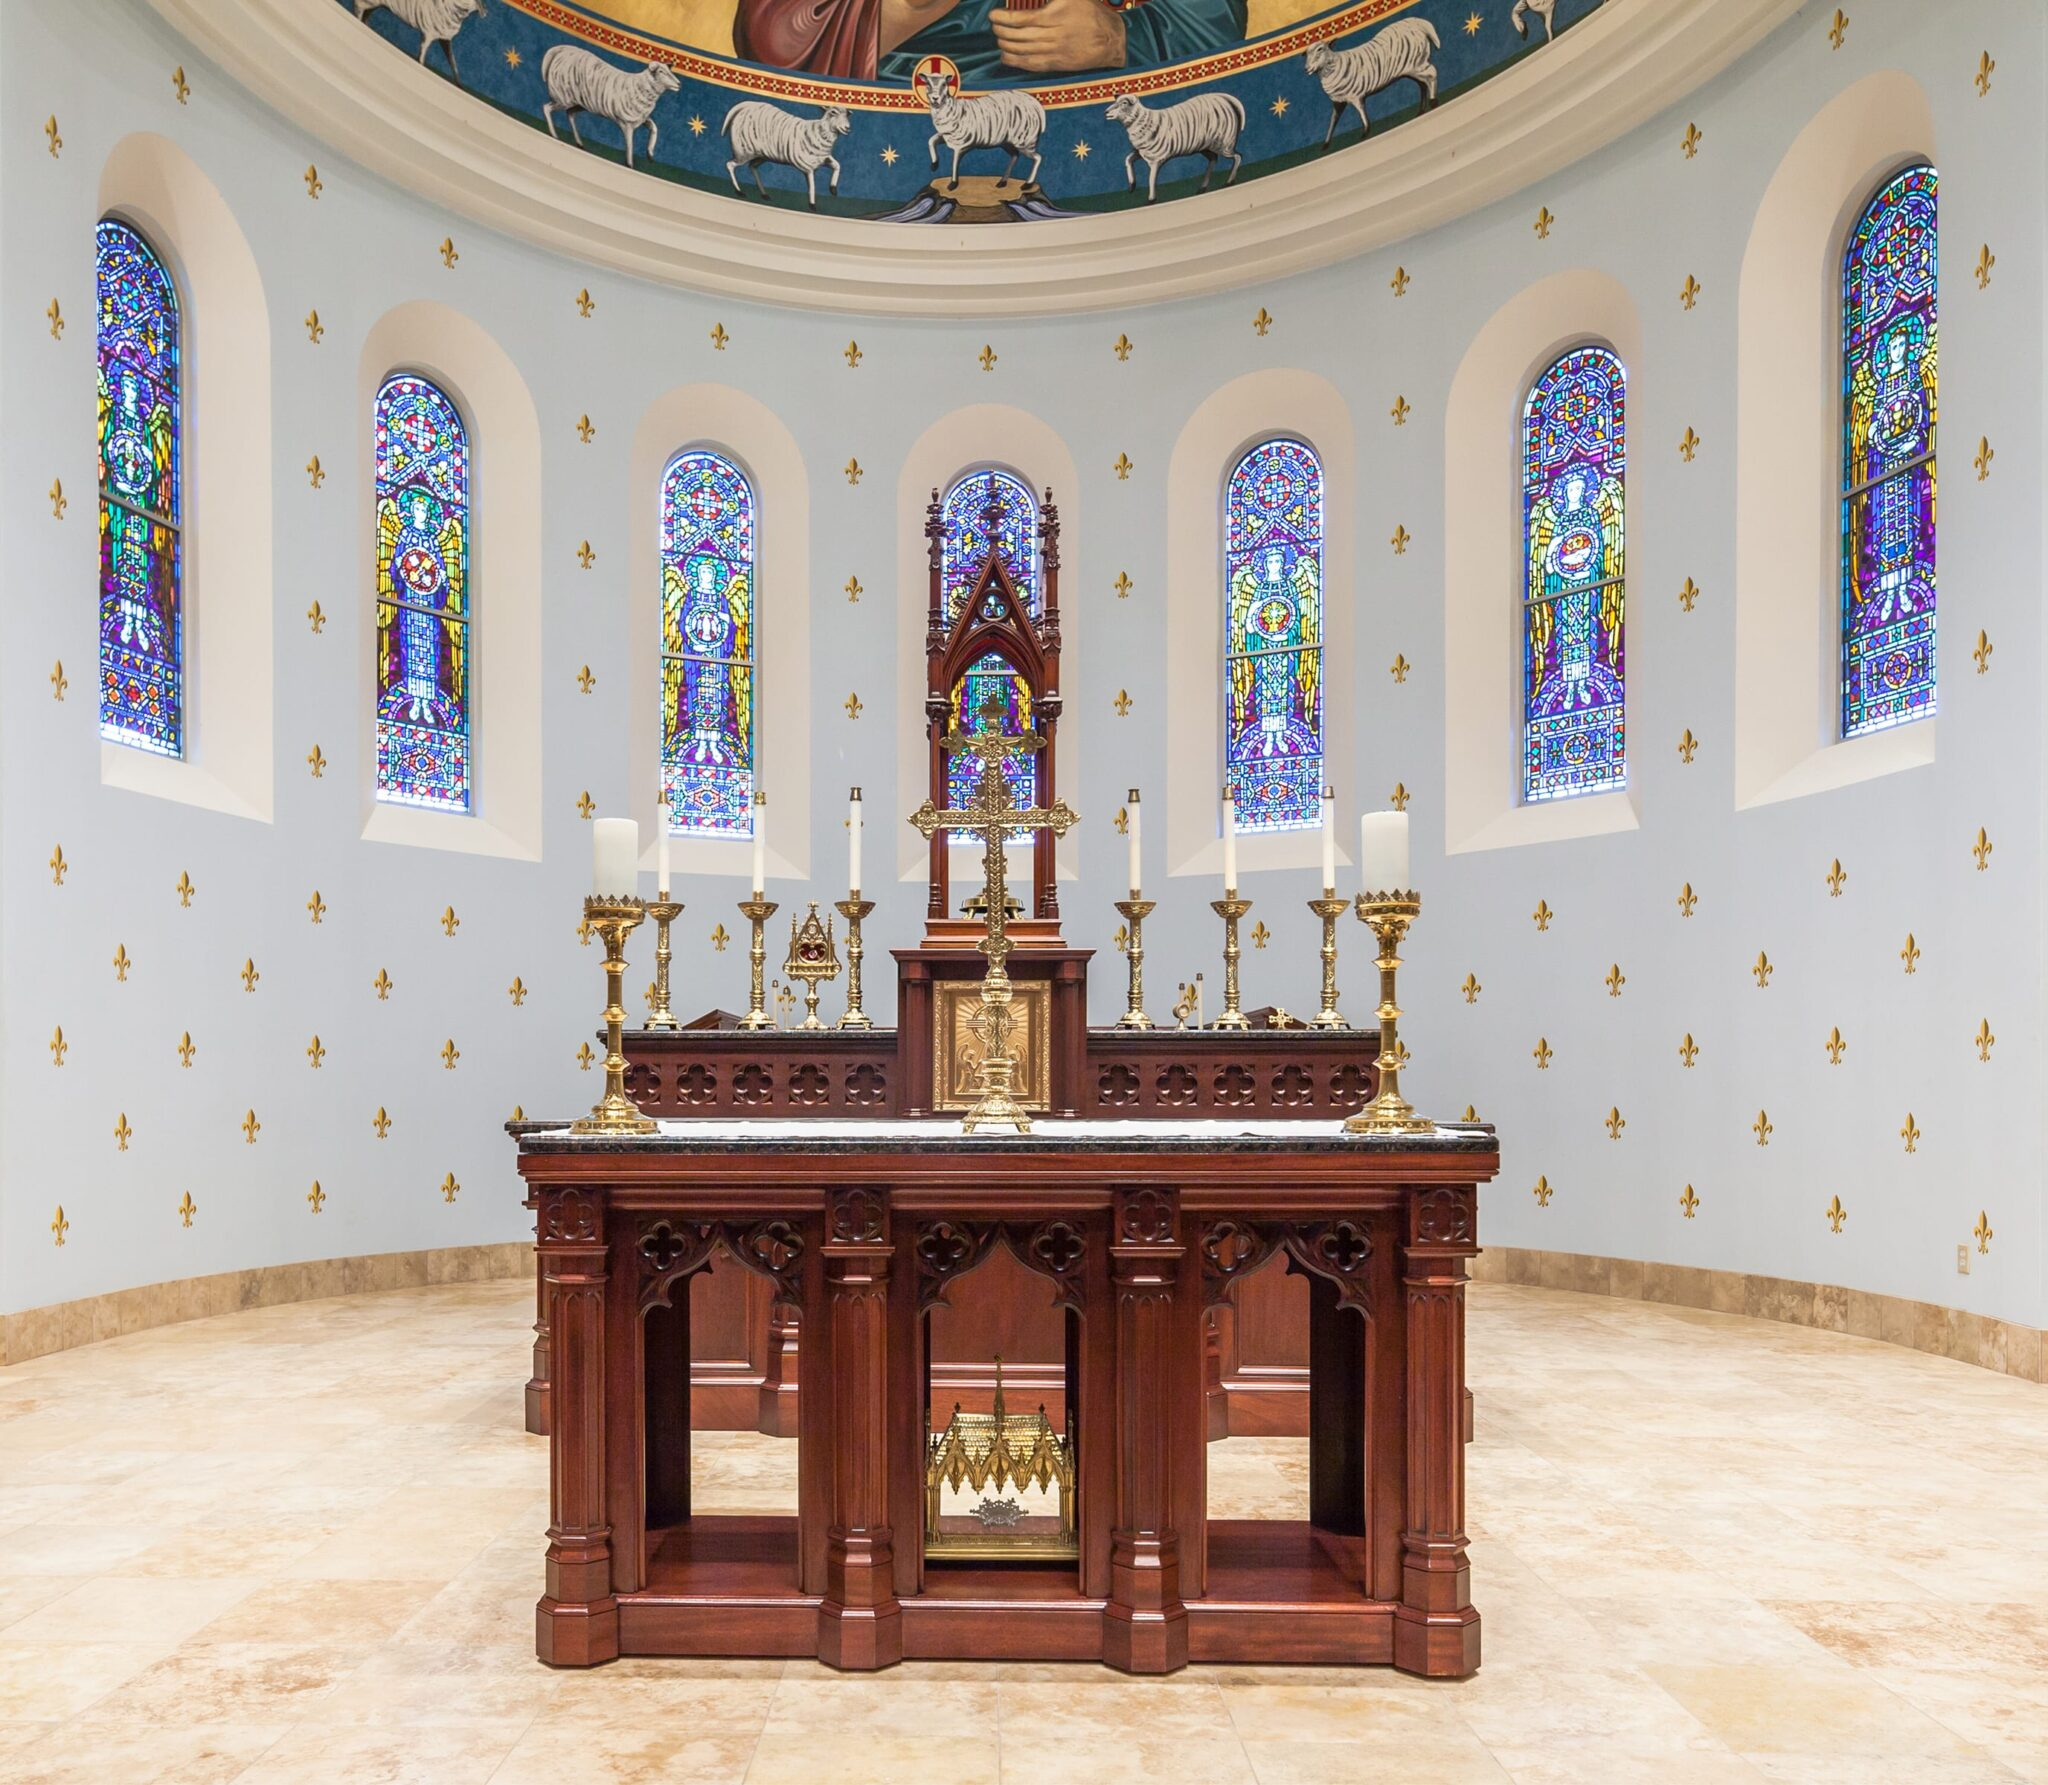 View of Wooden Altar in circular sanctuary